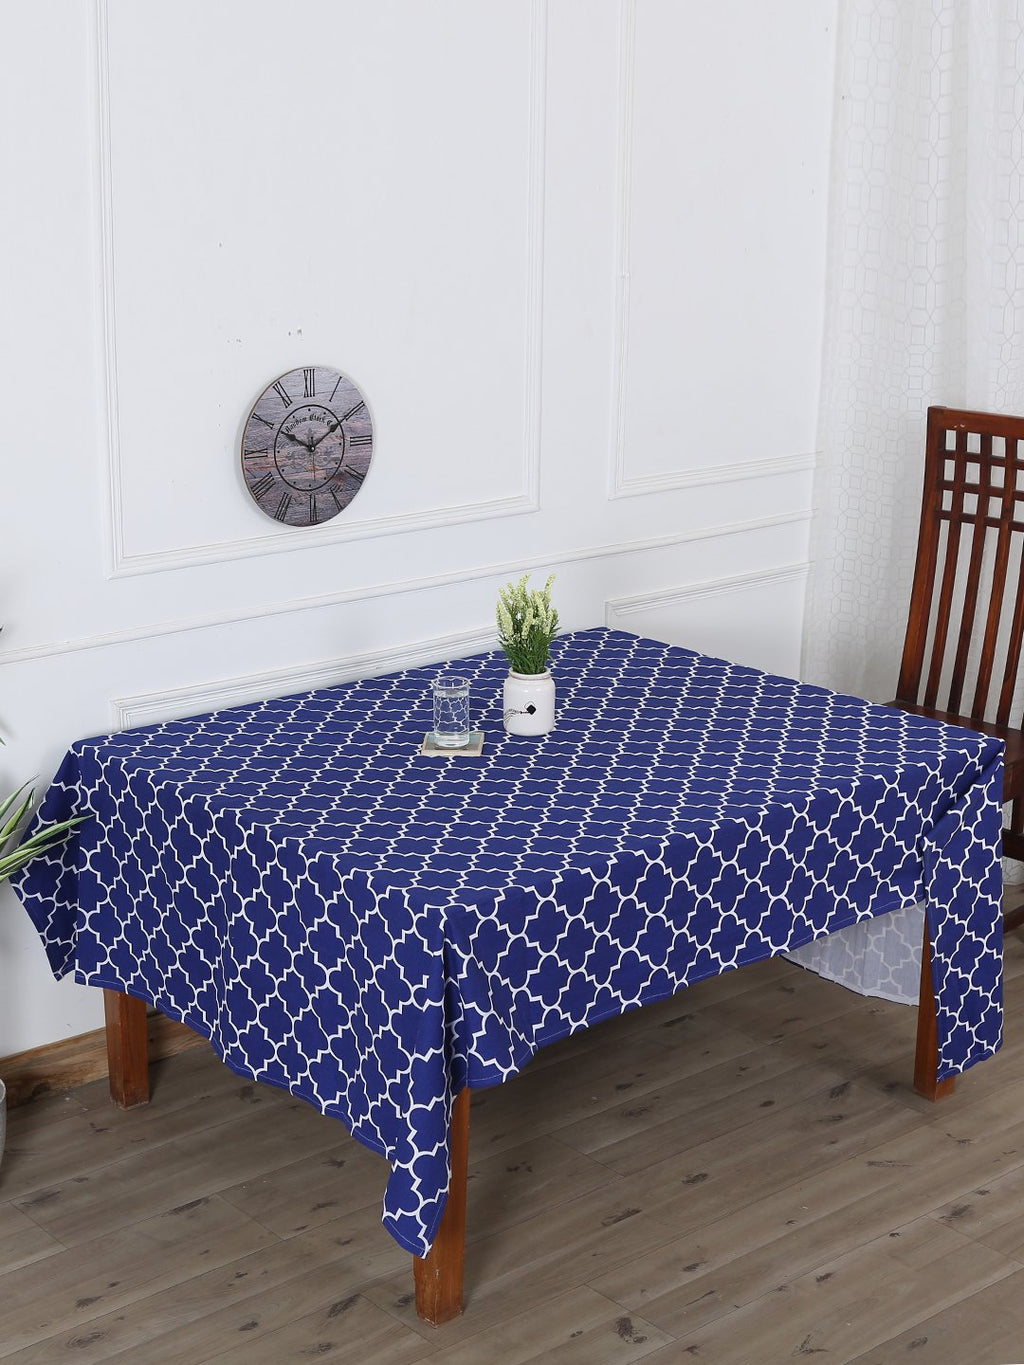 Handcrafted Persian Sapphire Table Cover